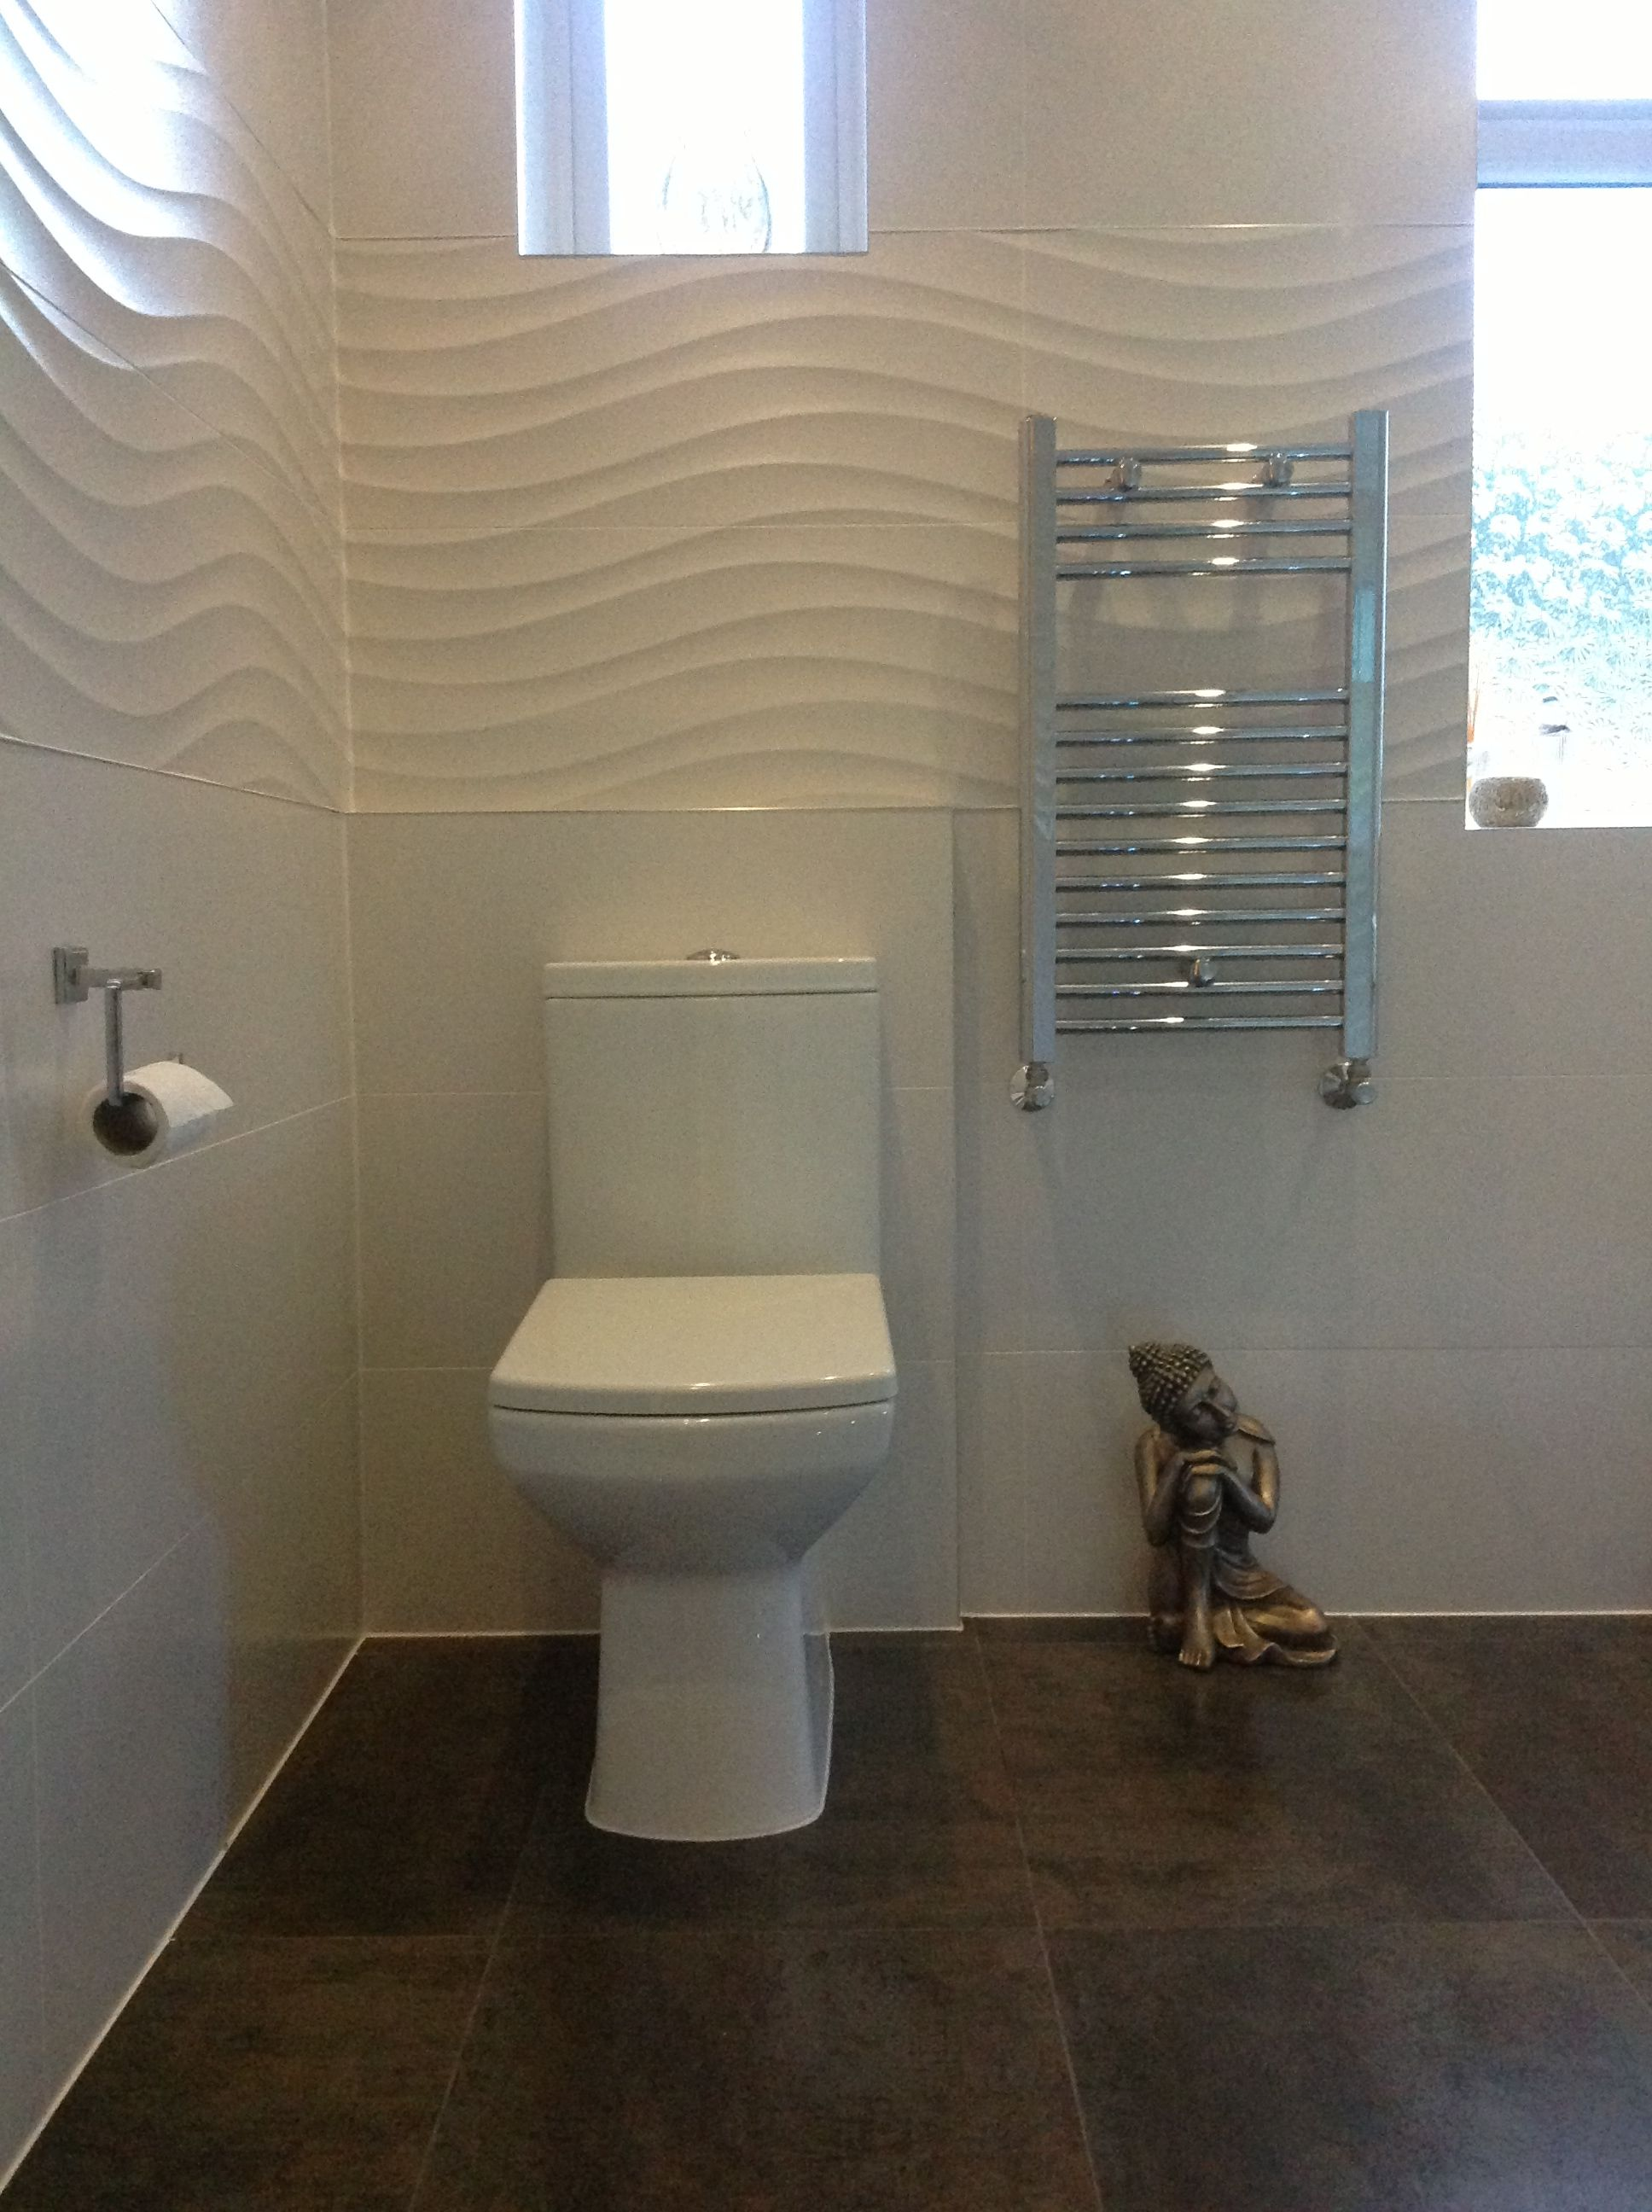 Fresh White Bathroom Tiles With Feature Wave Design Tiles By Porcelanosa Tile Bathroom Small Bathroom Tiles Small Bathroom